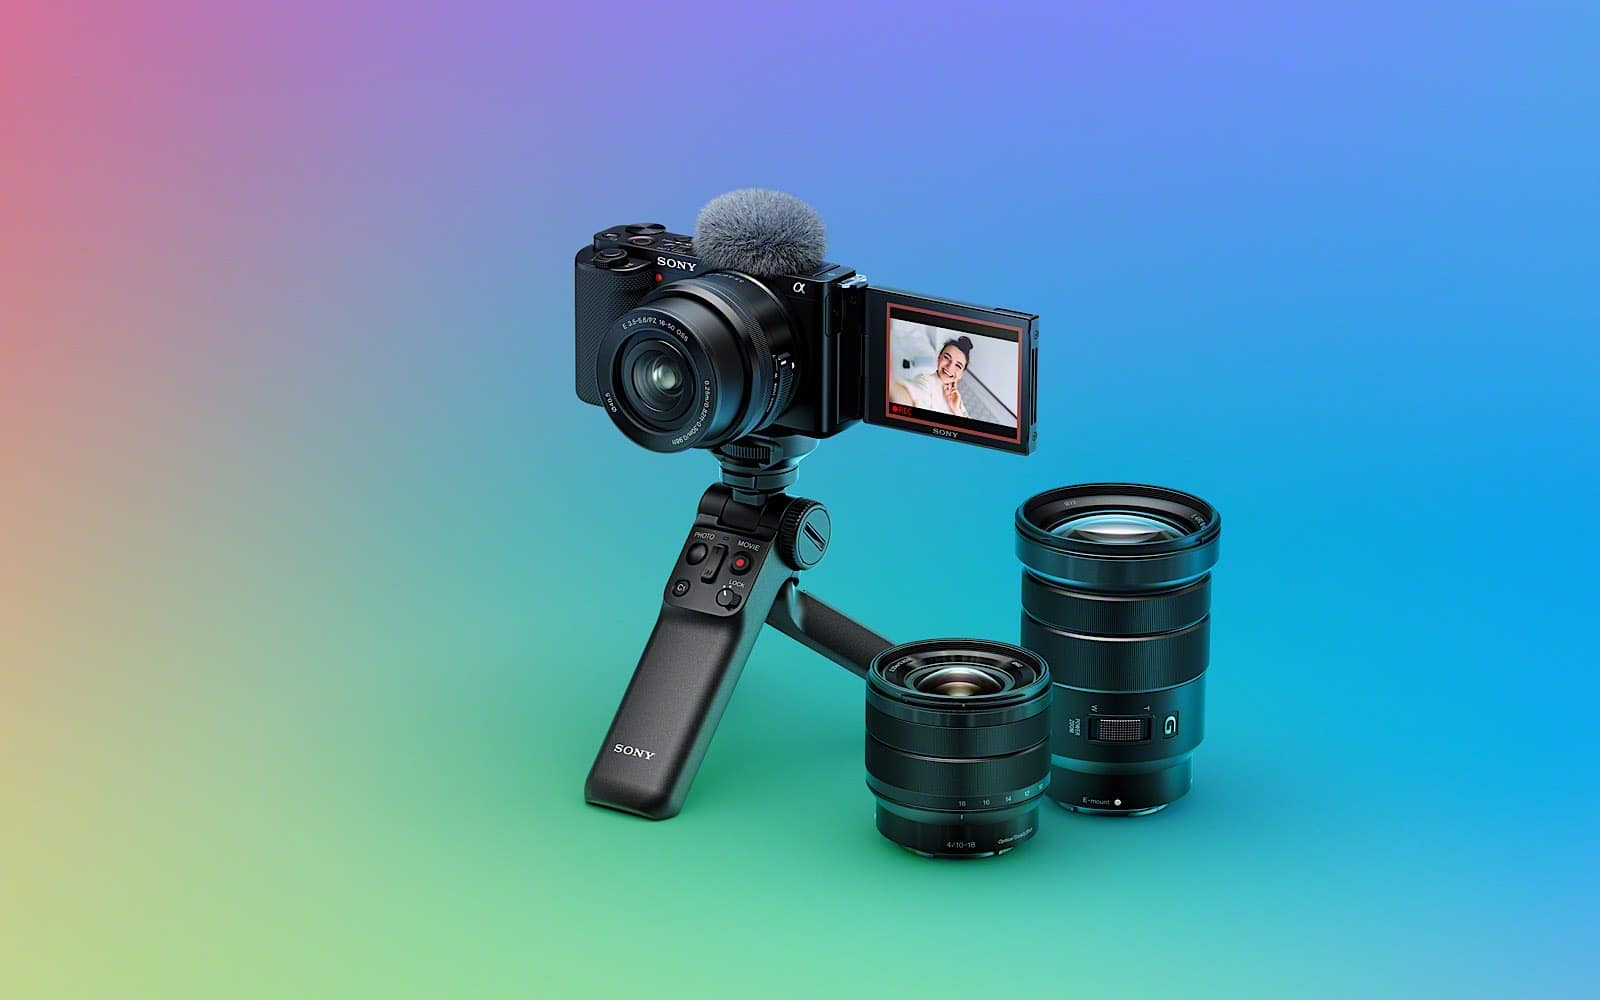 Sony's New ZV-E10 APS-C Camera Is Designed For Vloggers And Video Creators